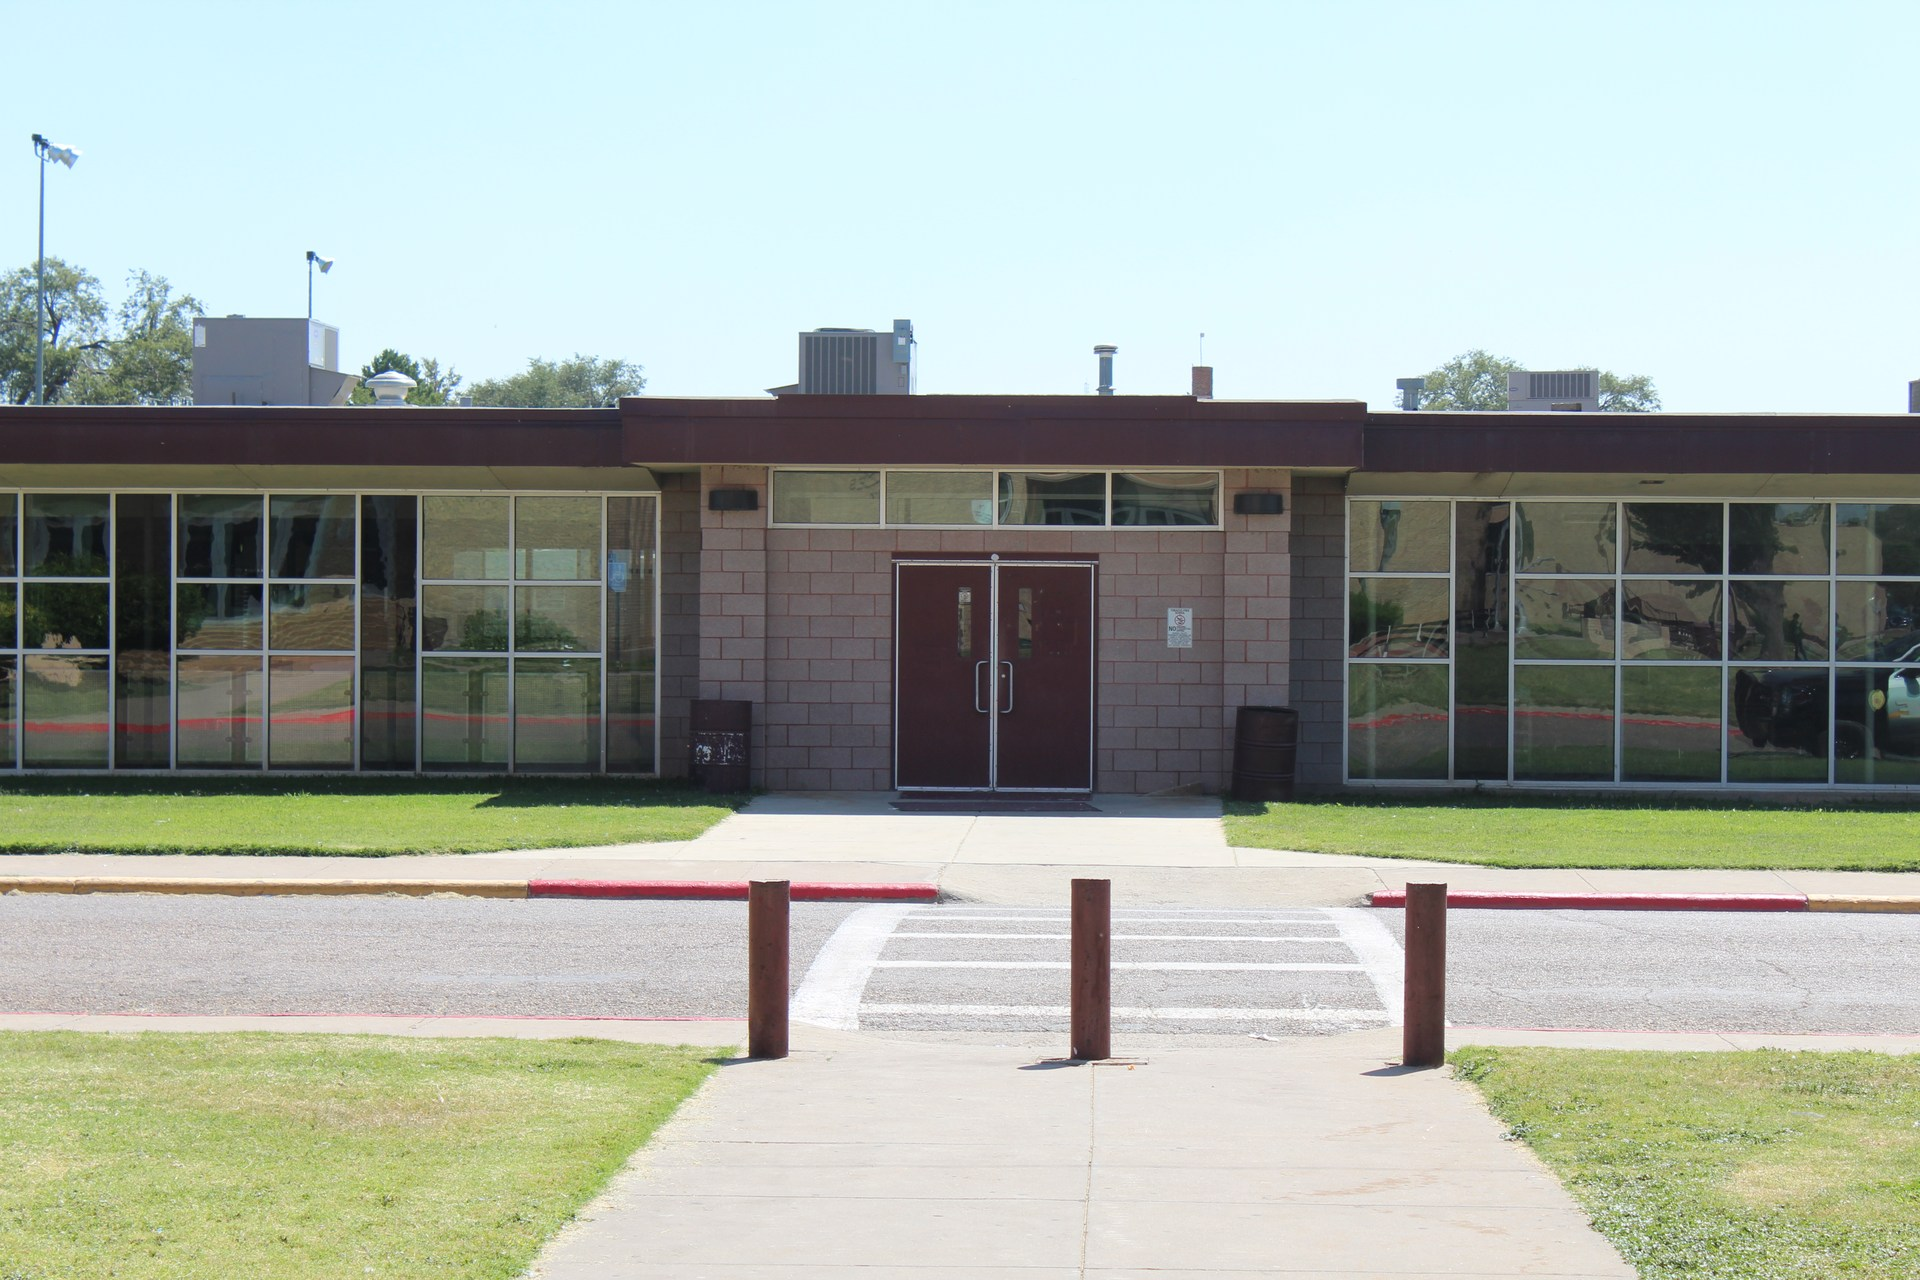 Hereford High school cafeteria